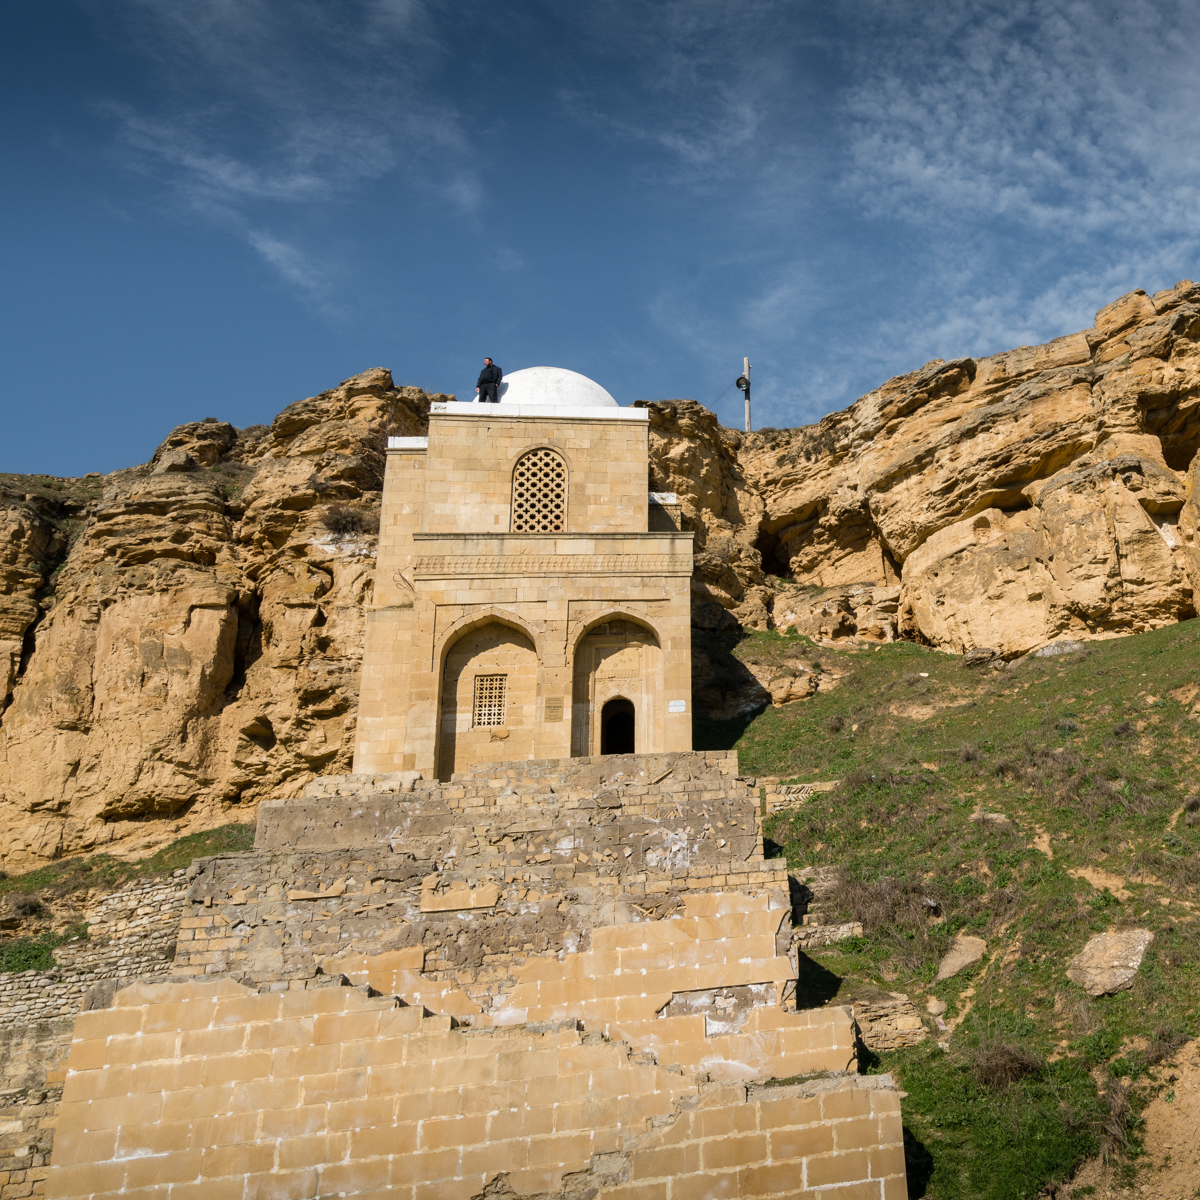 Looking up at a mosque built into a cliff with man on roof